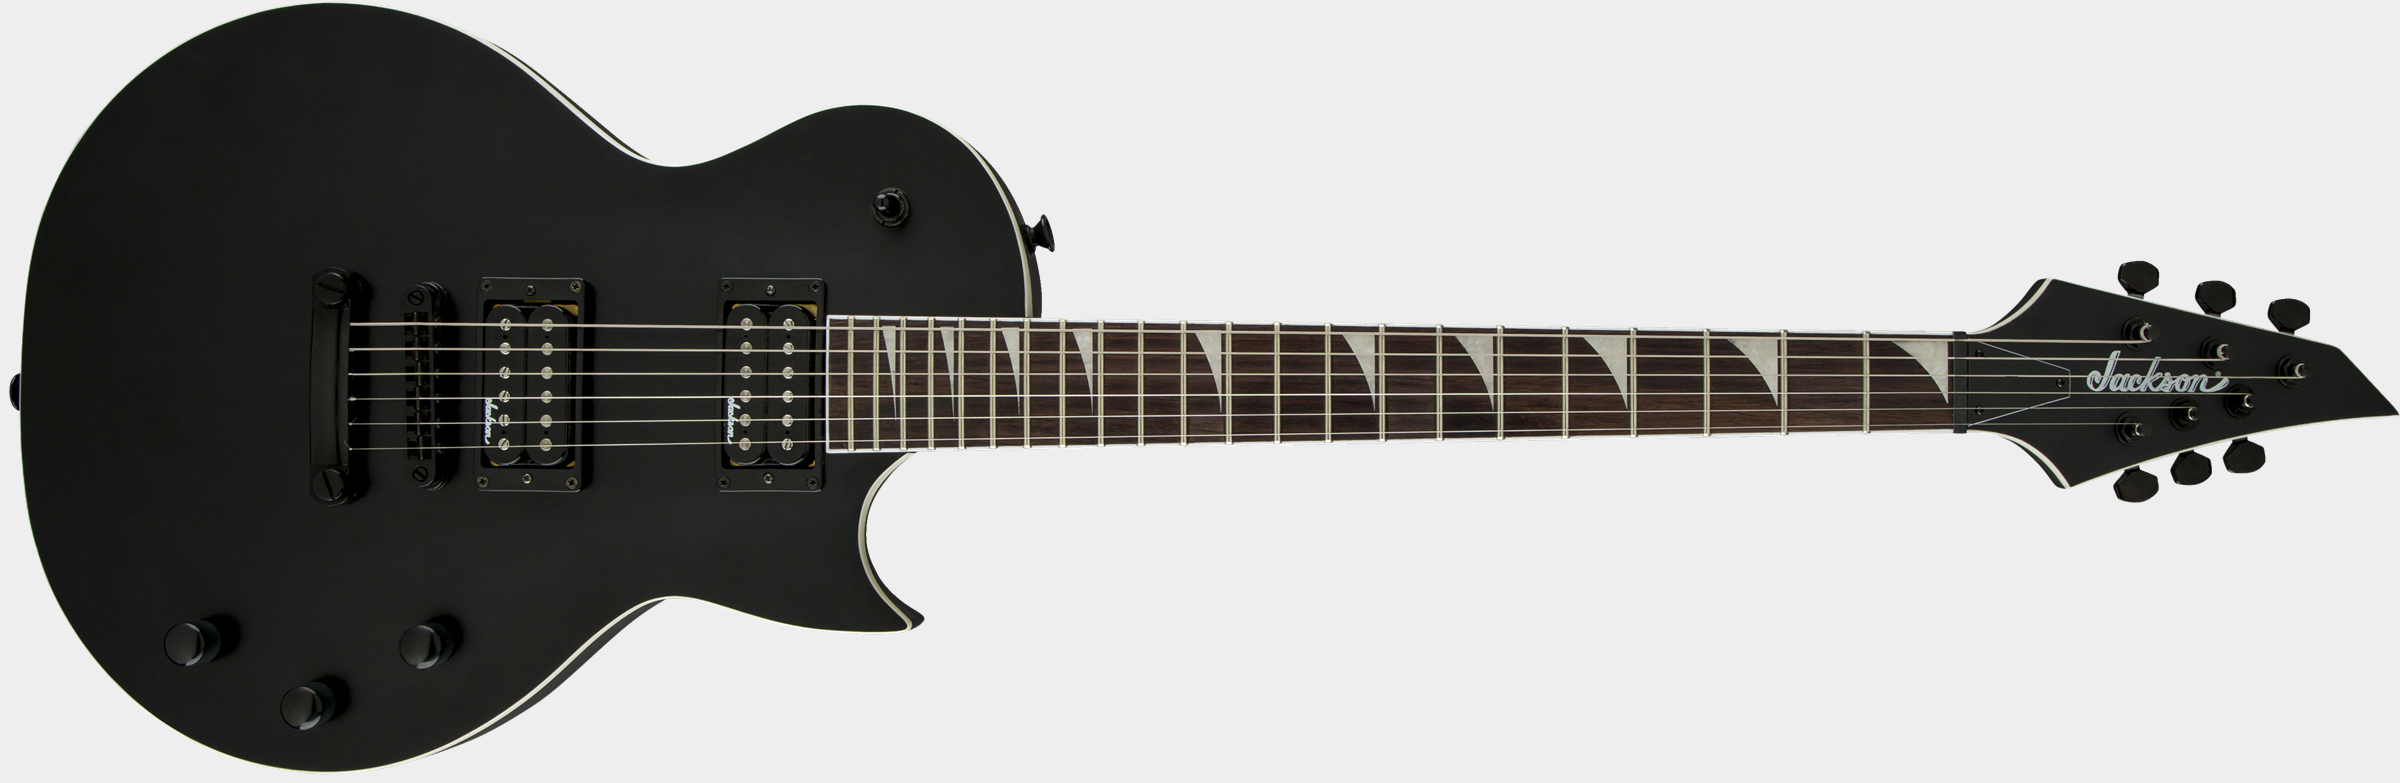 JACKSON X Series Monarkh Satin Black